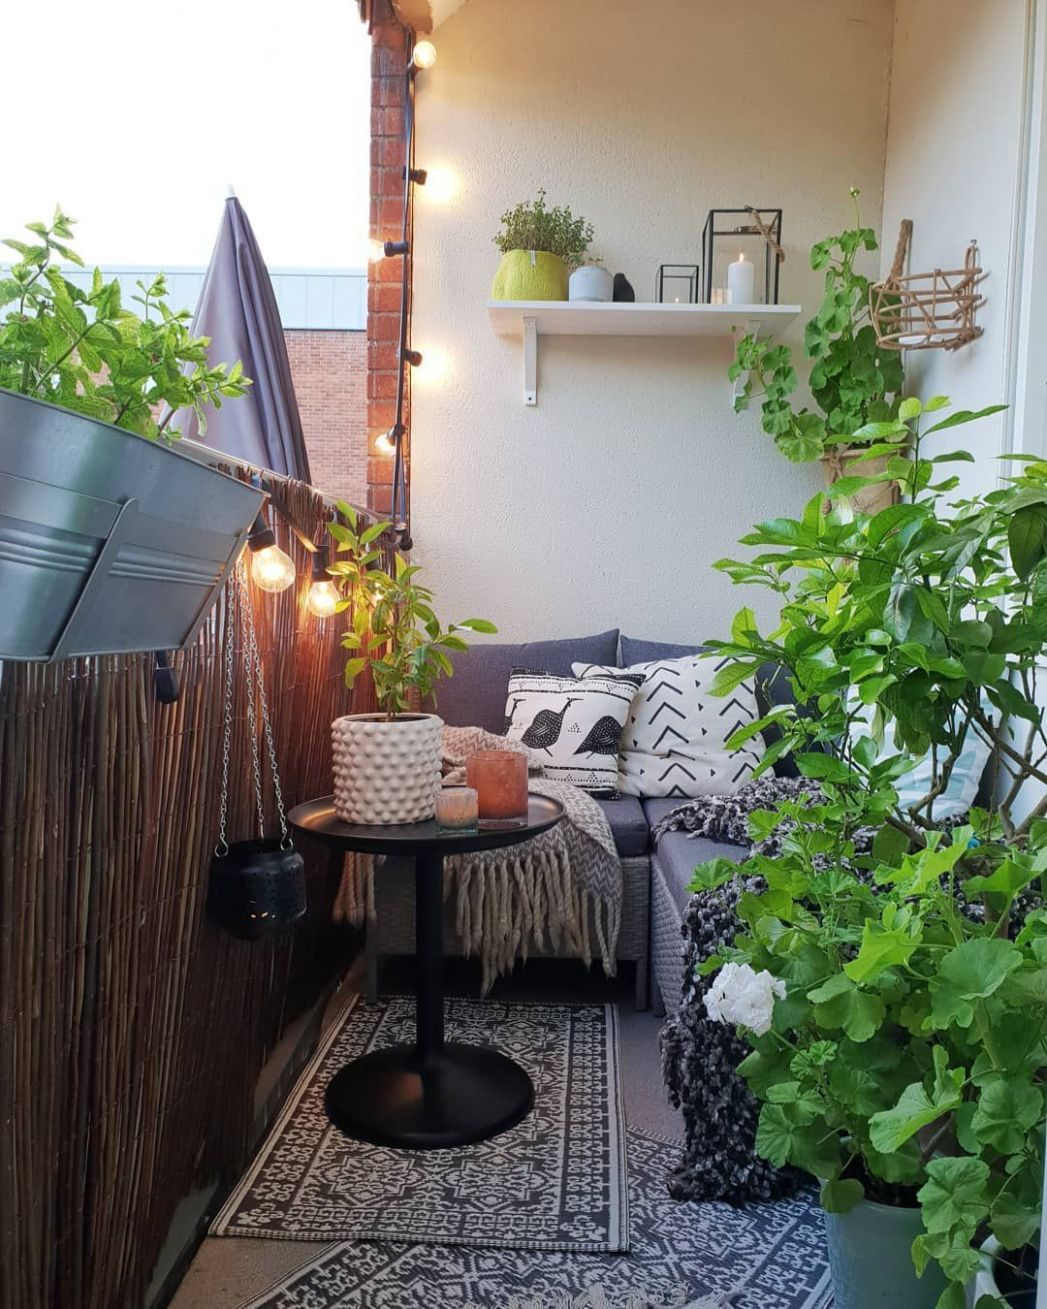 9 Ways to Make the Most of Your Tiny Apartment Balcony - balcony ideas for apartments india